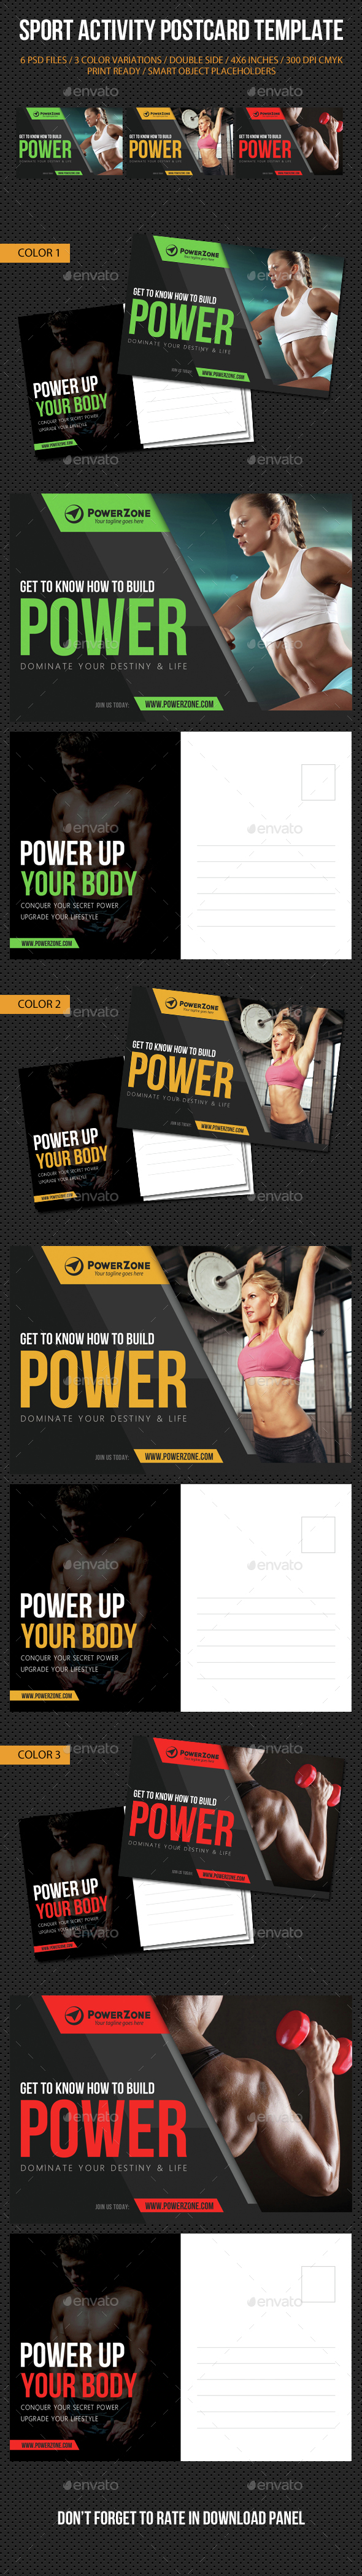 Sport Activity Postcard Template V11 - Cards & Invites Print Templates